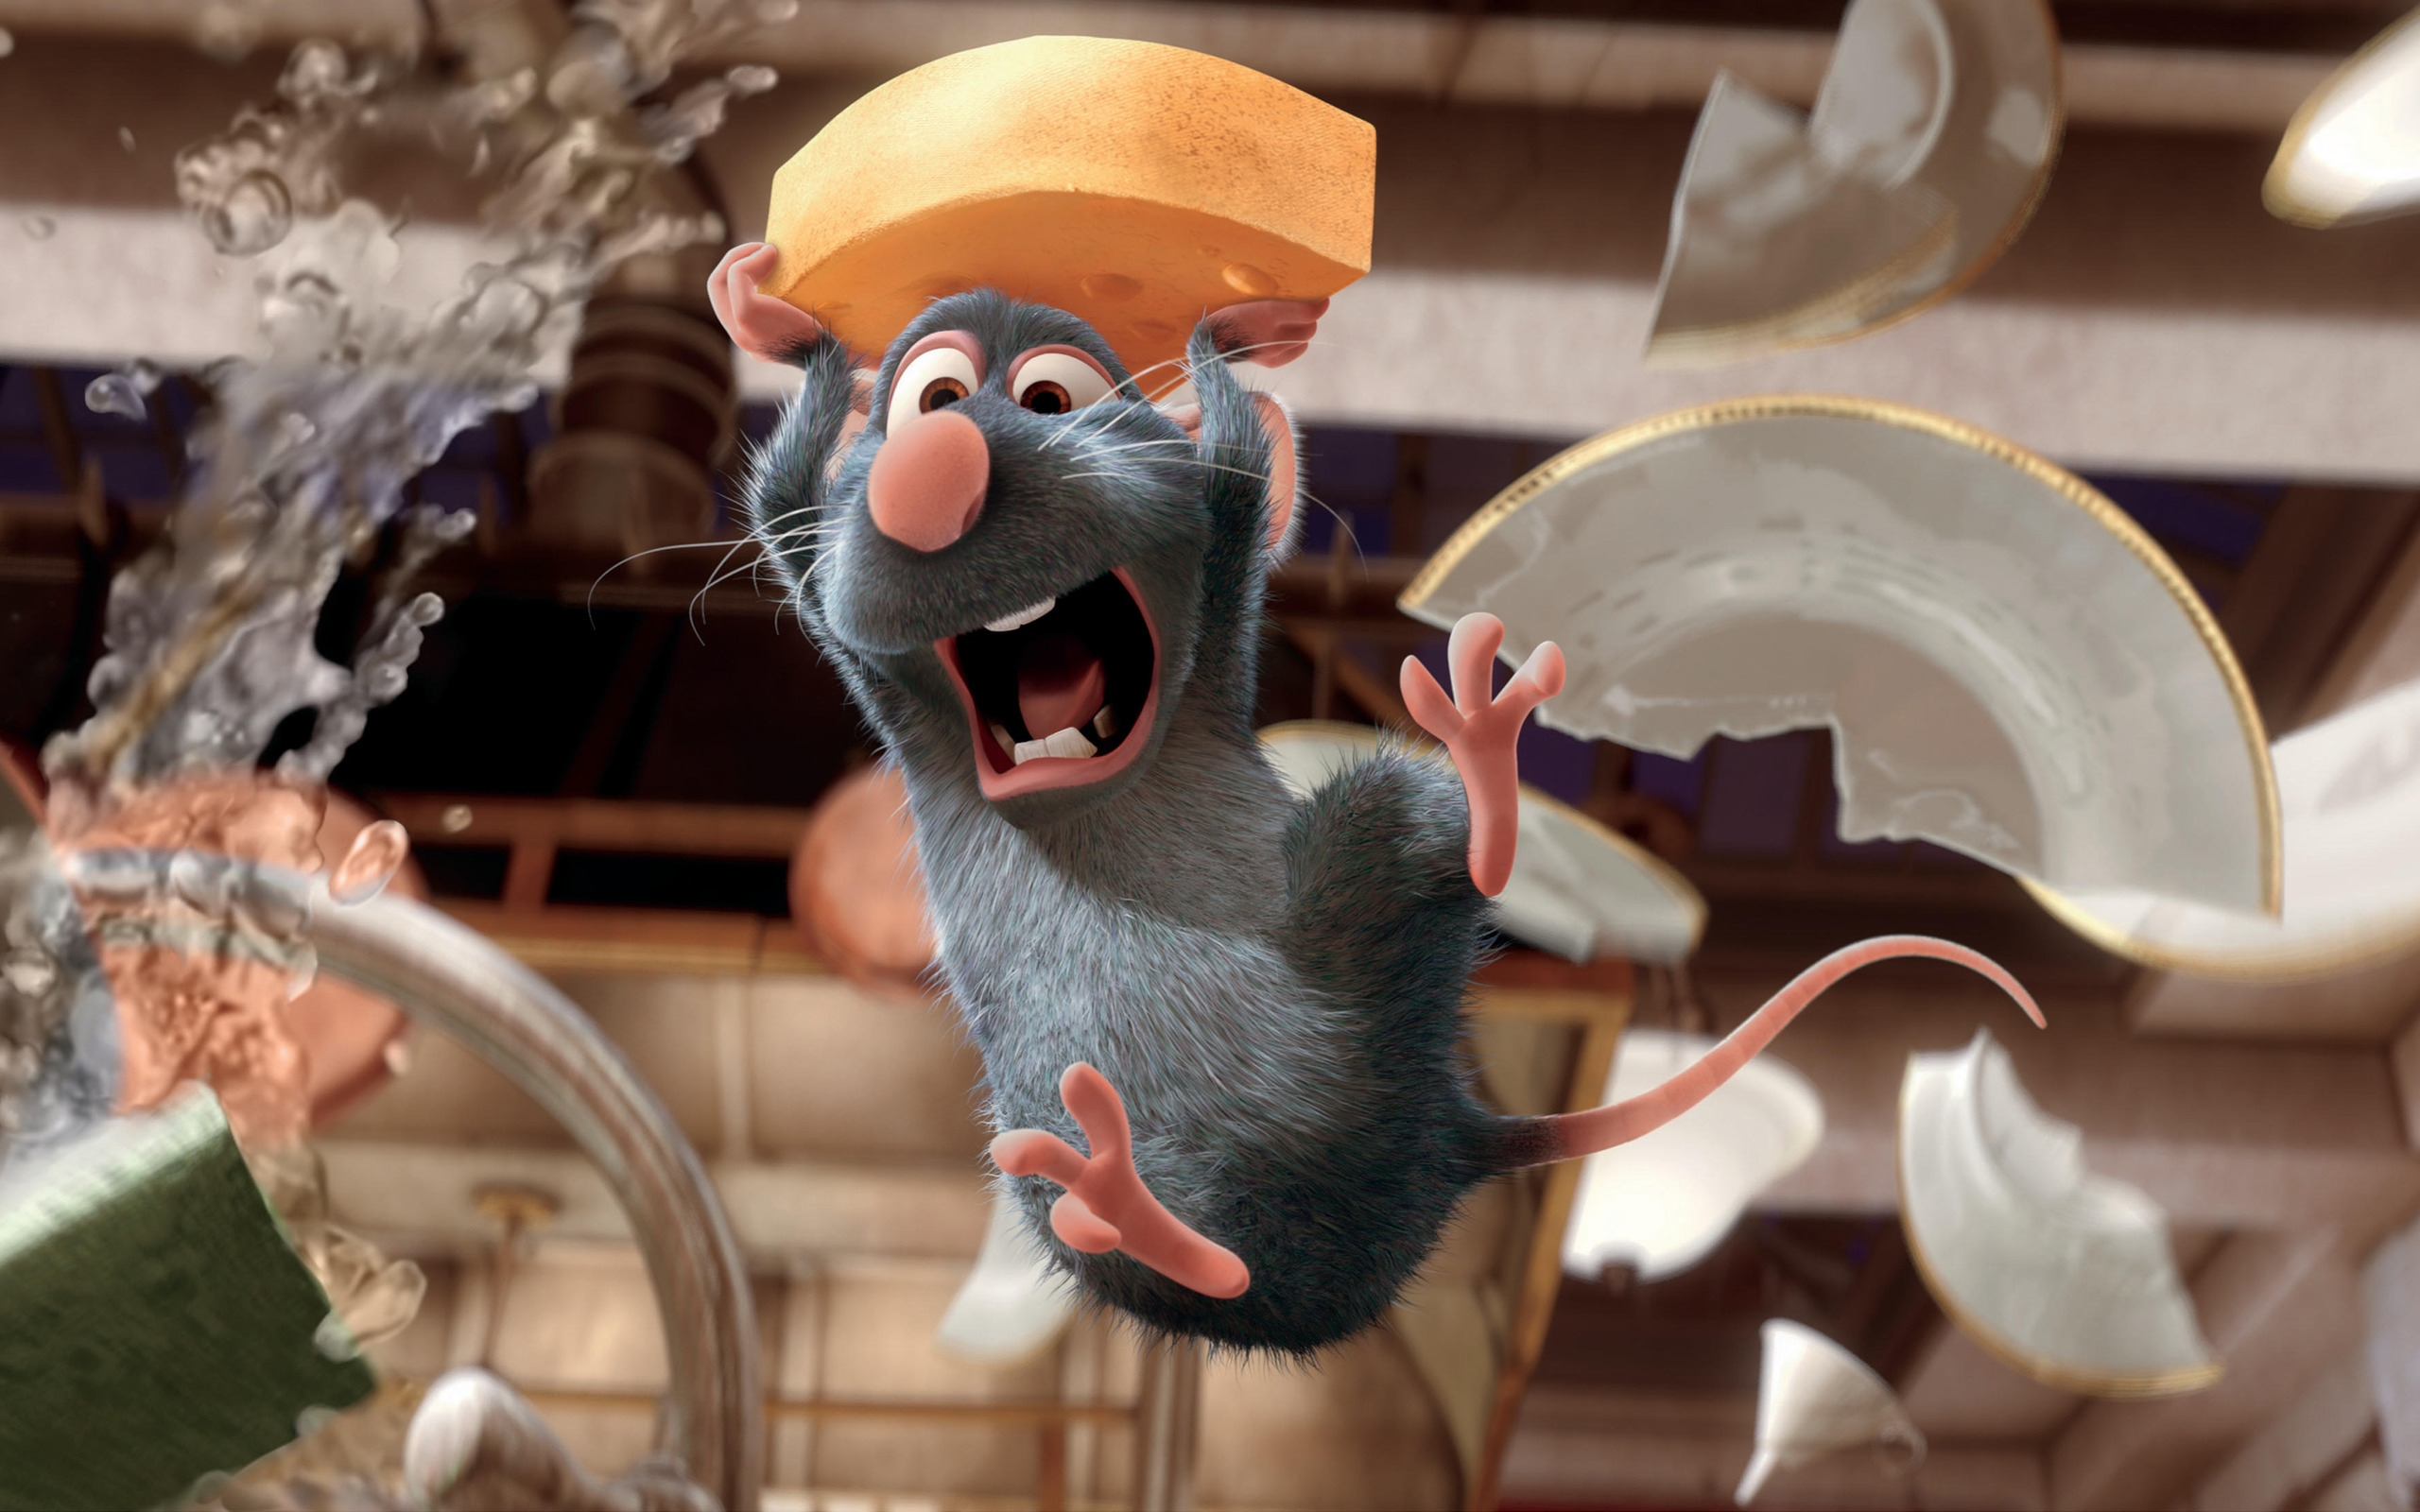 33938 download wallpaper Cartoon, Ratatouille screensavers and pictures for free